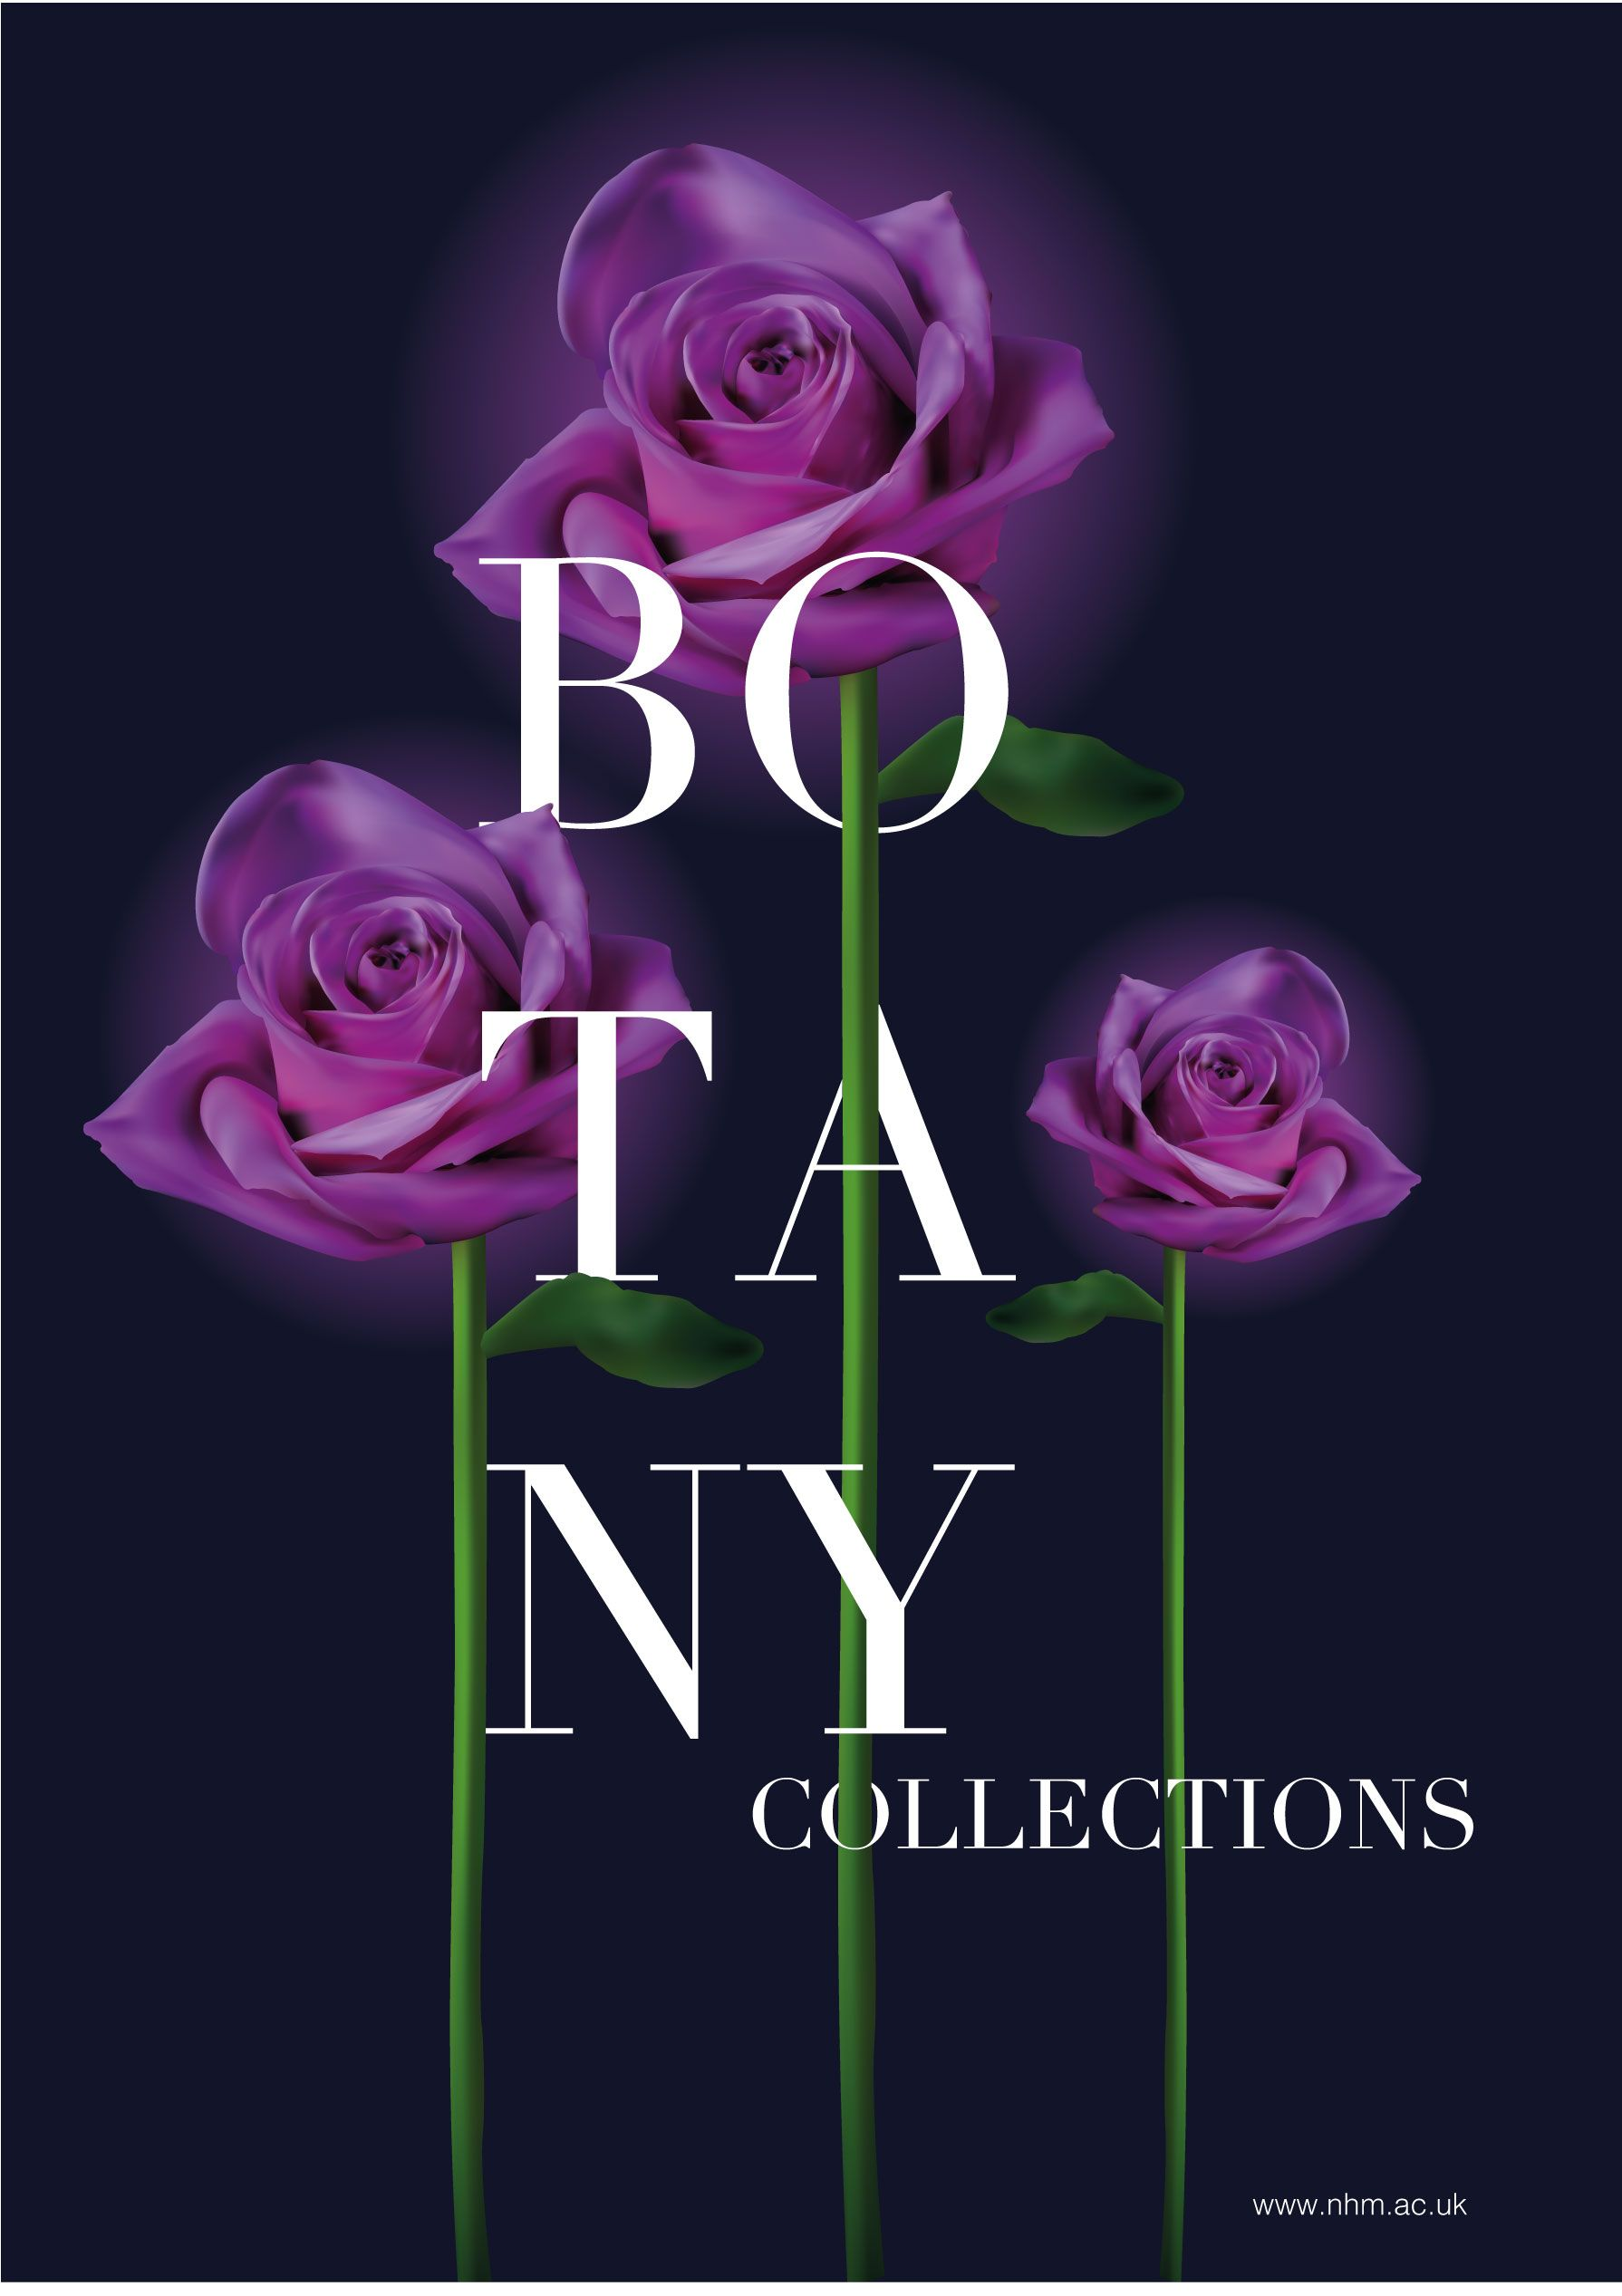 Purple rose 'Botany Collections' poster design. Created using Adobe Illustrator.